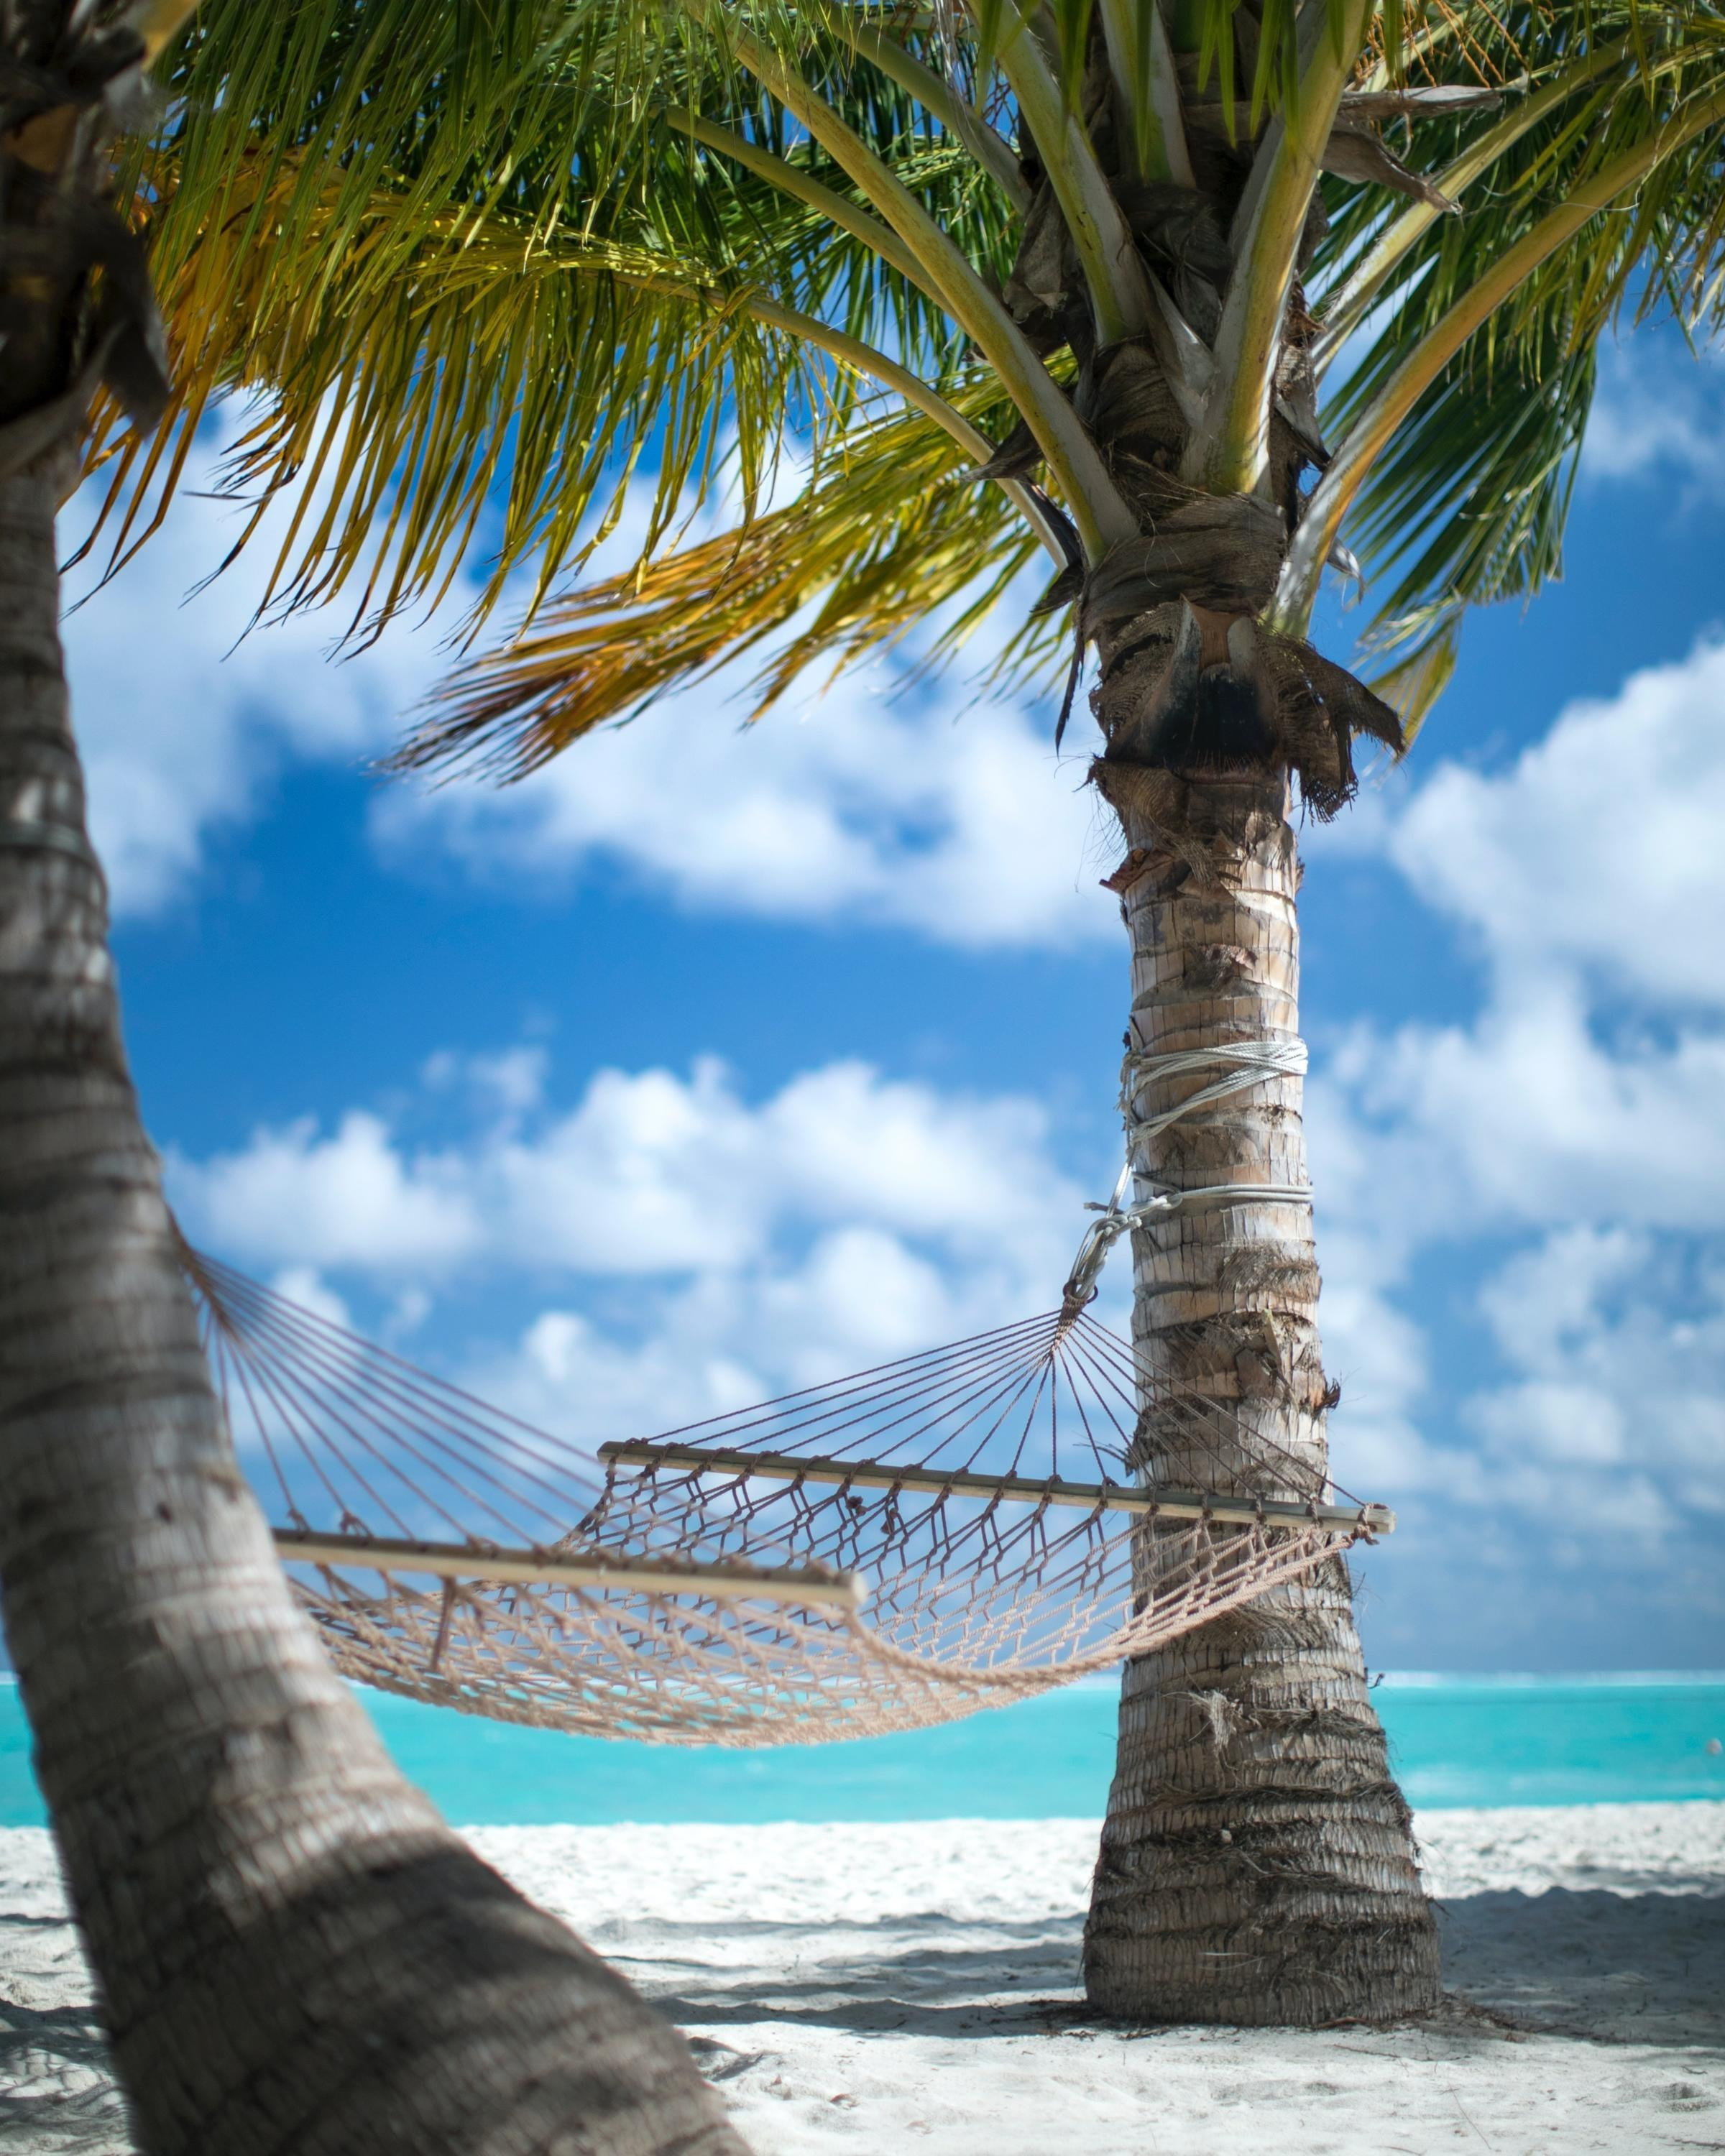 So, you took the big bold brave step to build a new business so you could work from a hammock on the beach!